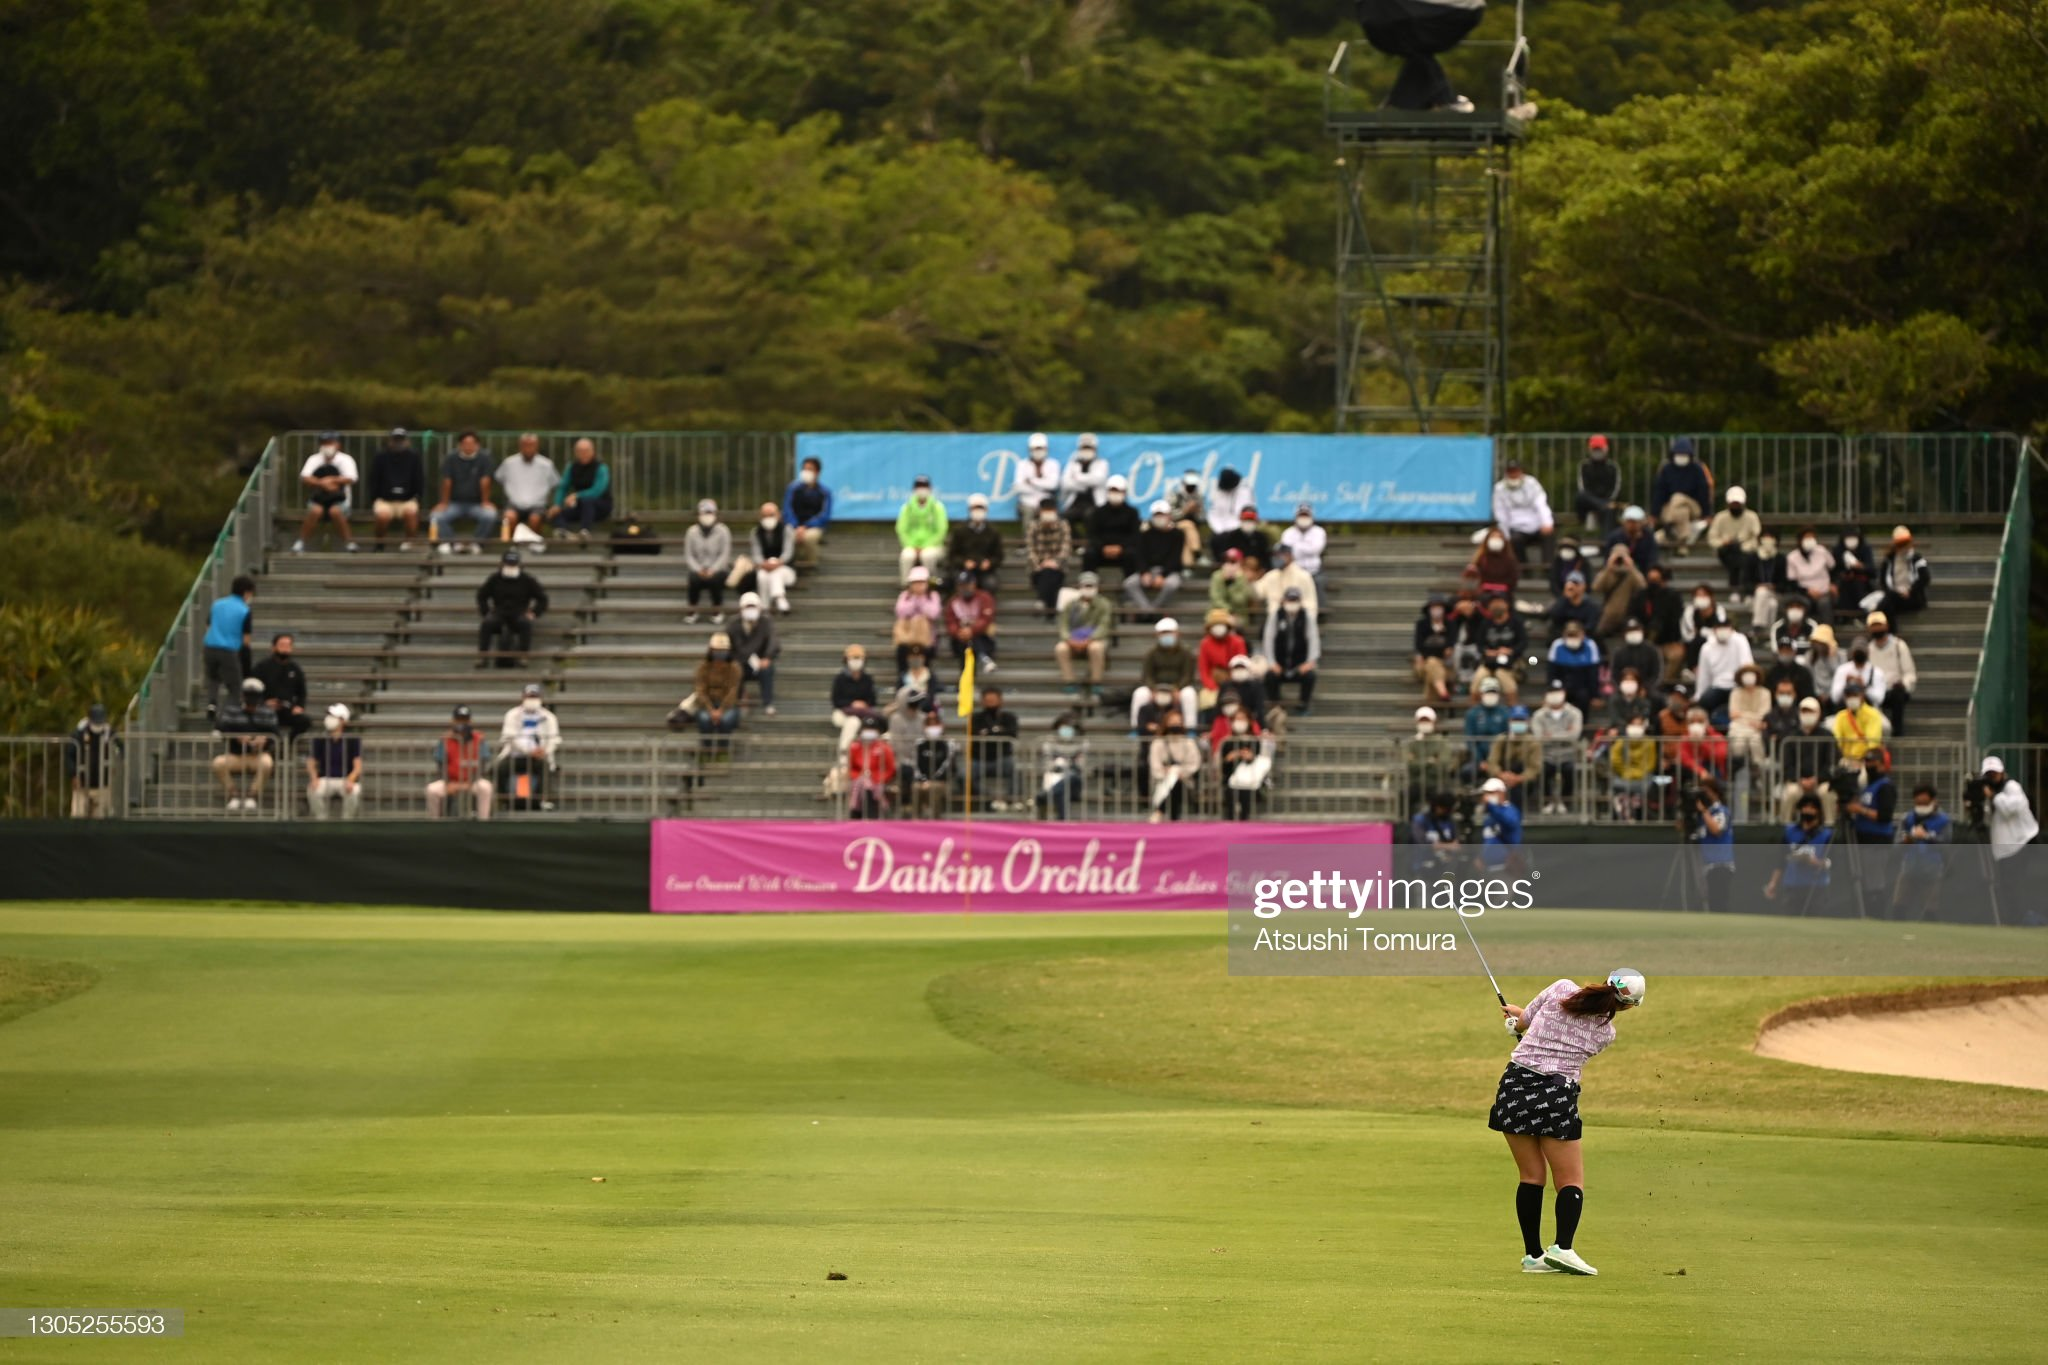 https://media.gettyimages.com/photos/seonwoo-bae-of-south-korea-hits-her-third-shot-on-the-18th-hole-the-picture-id1305255593?s=2048x2048